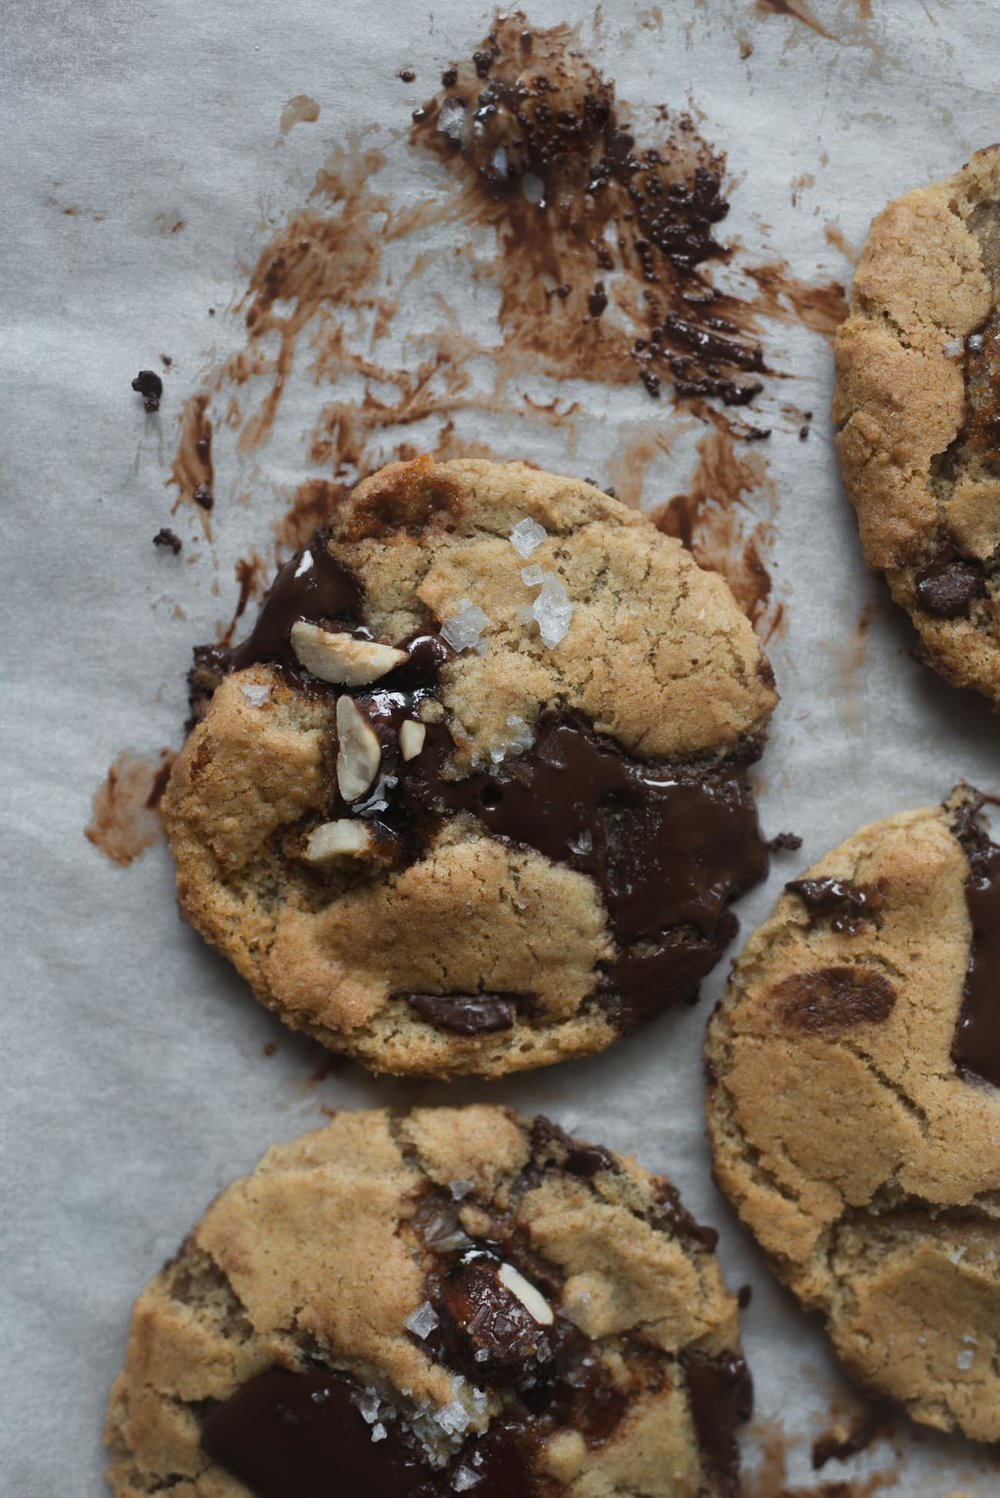 Hazelnut-Praline-and-Rye-Chocolate-Chunk-Cookies-2.jpg